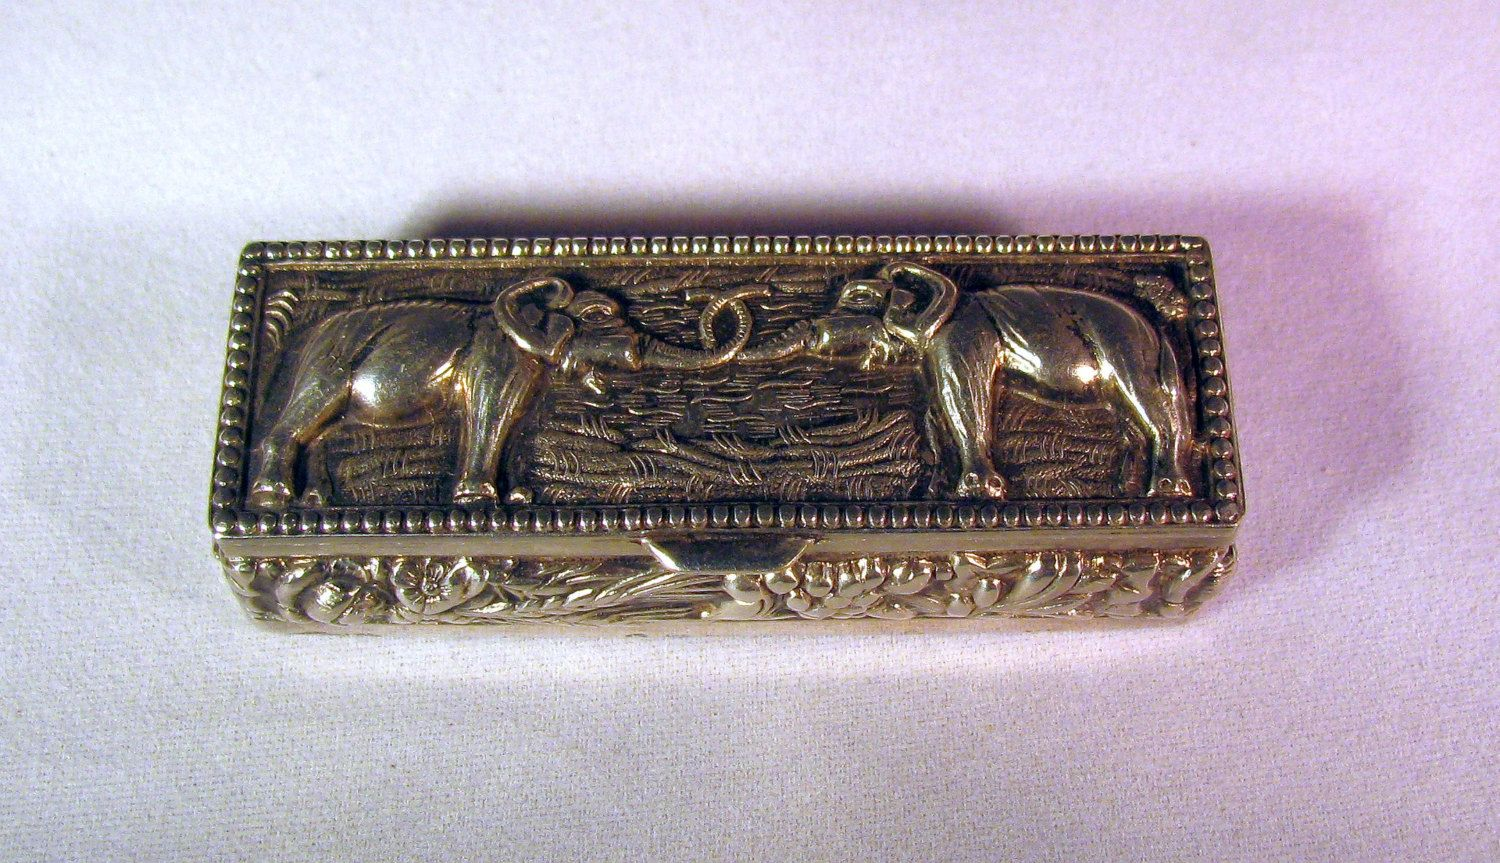 Intricate Vintage Silver Plate over Copper Repousse Pill